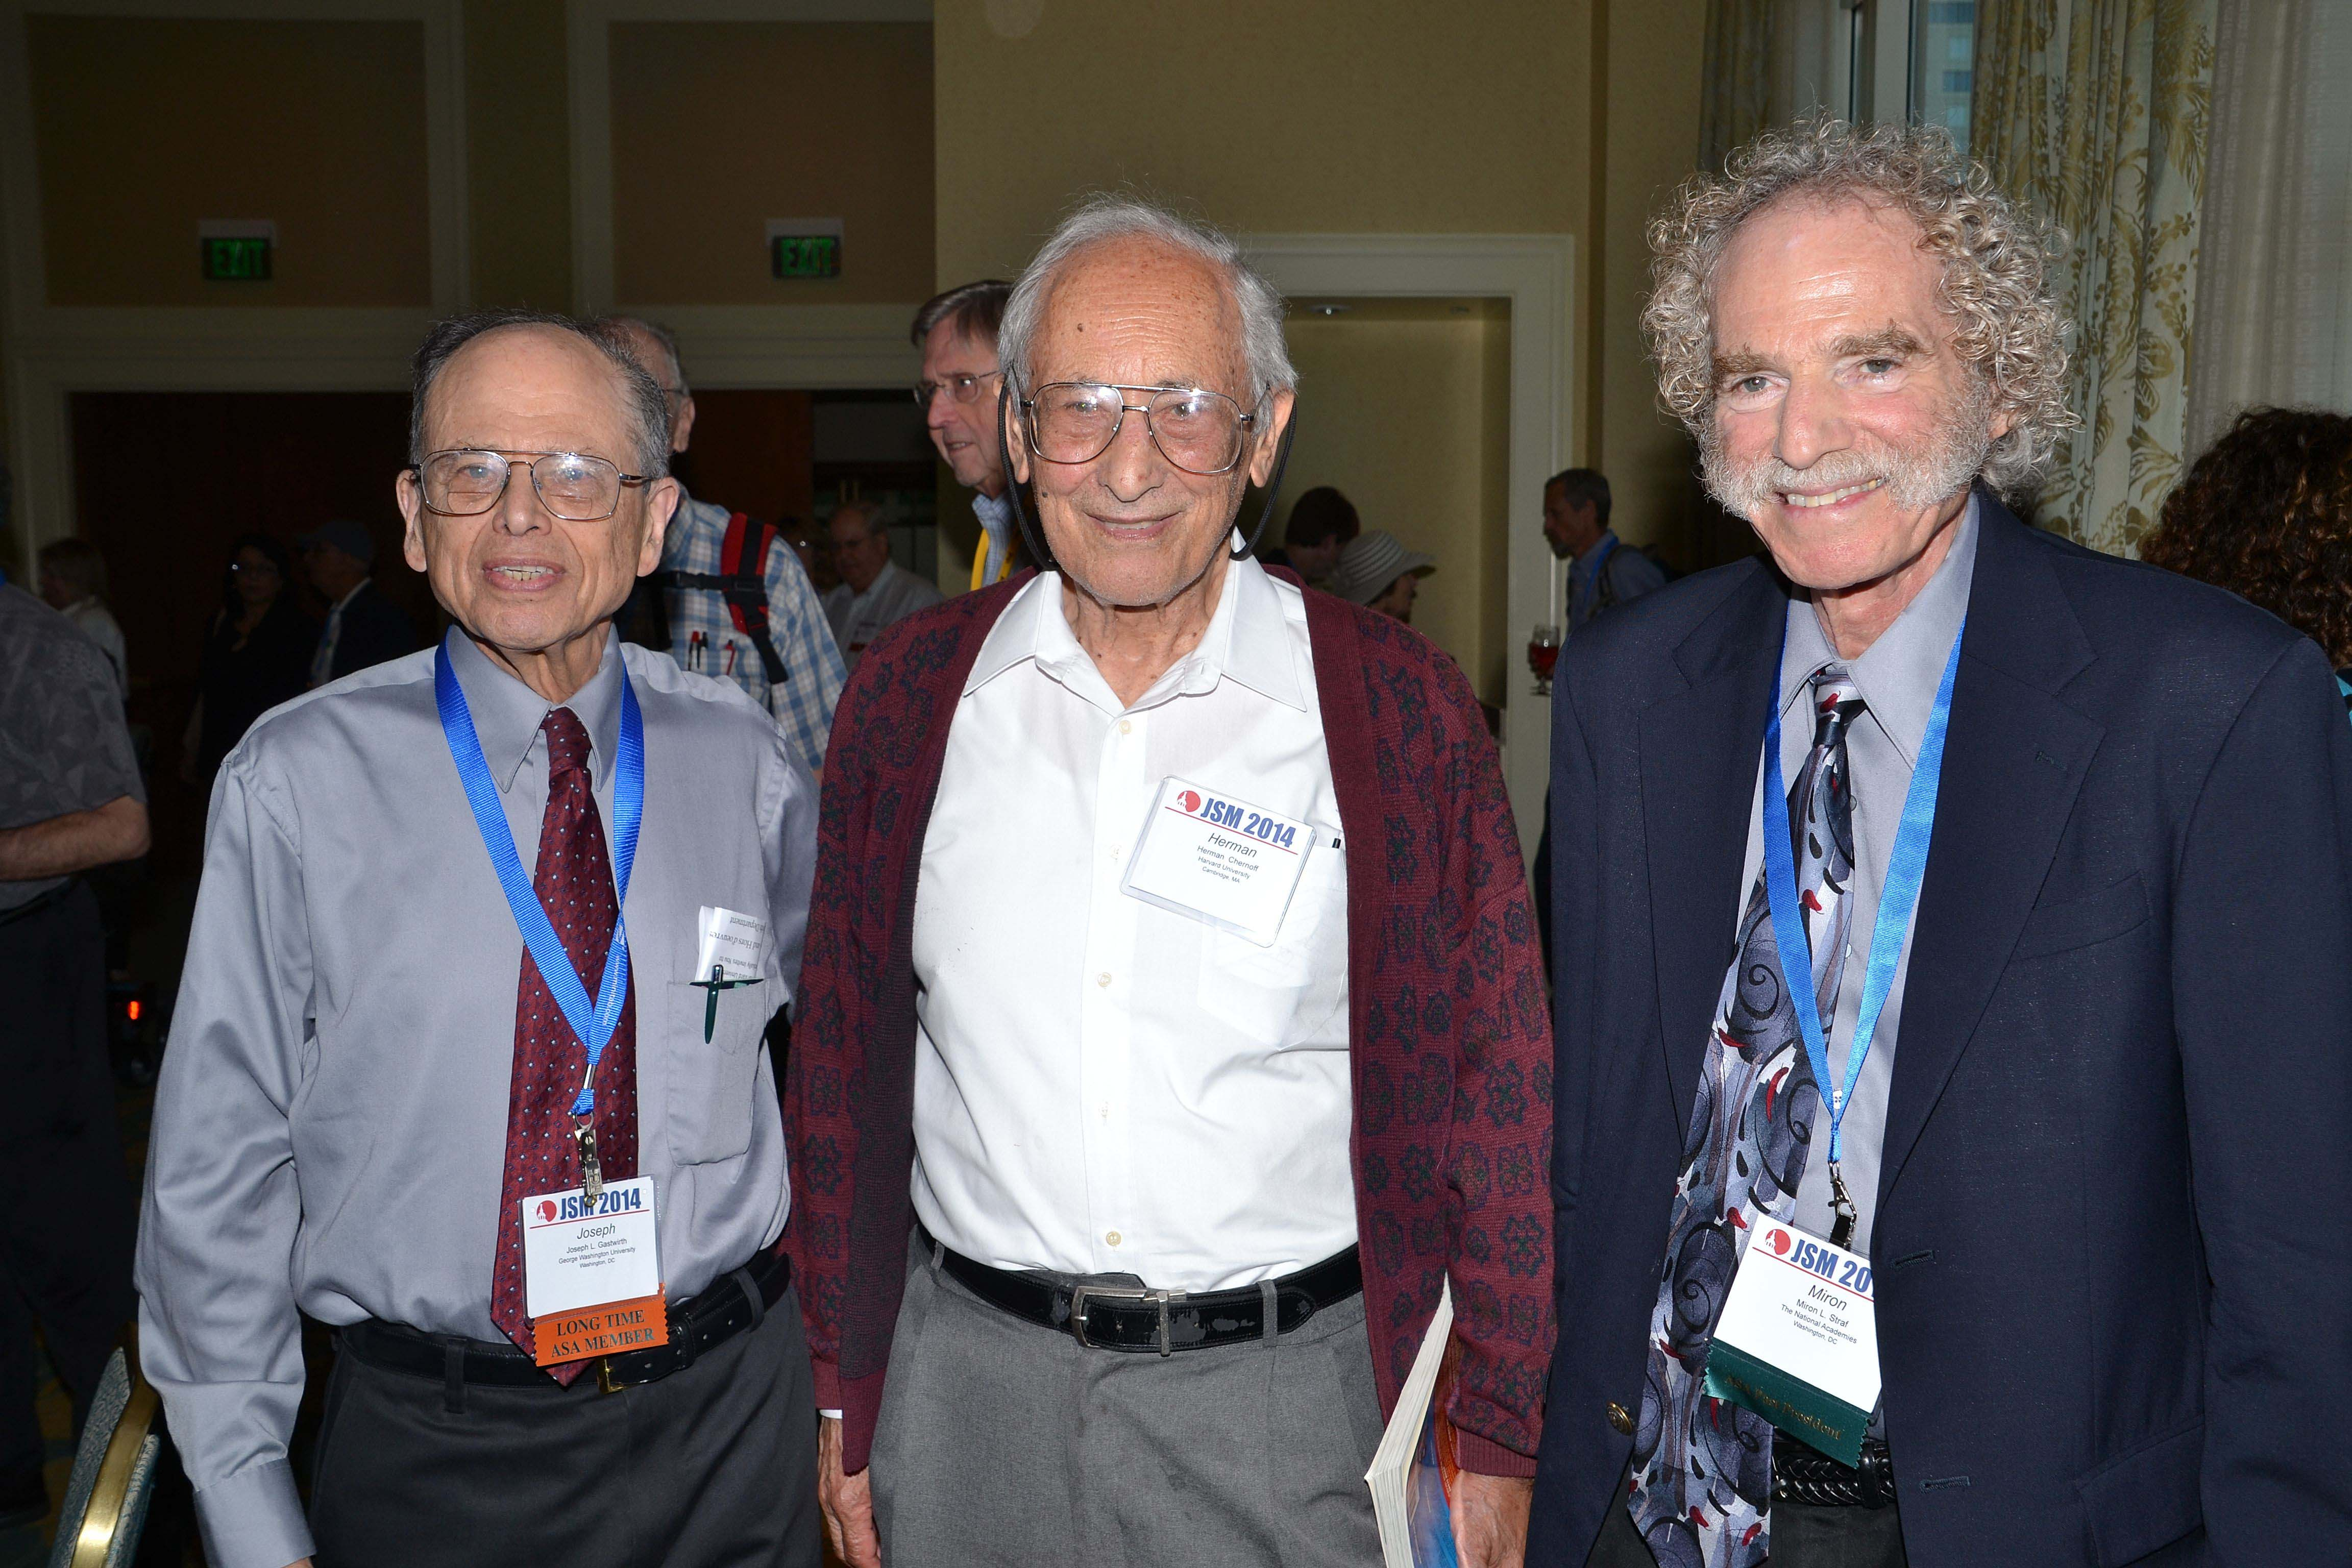 Joe Gastwirth, Herman Chernov, and Miron Straf catch up at the Longtime Member Reception